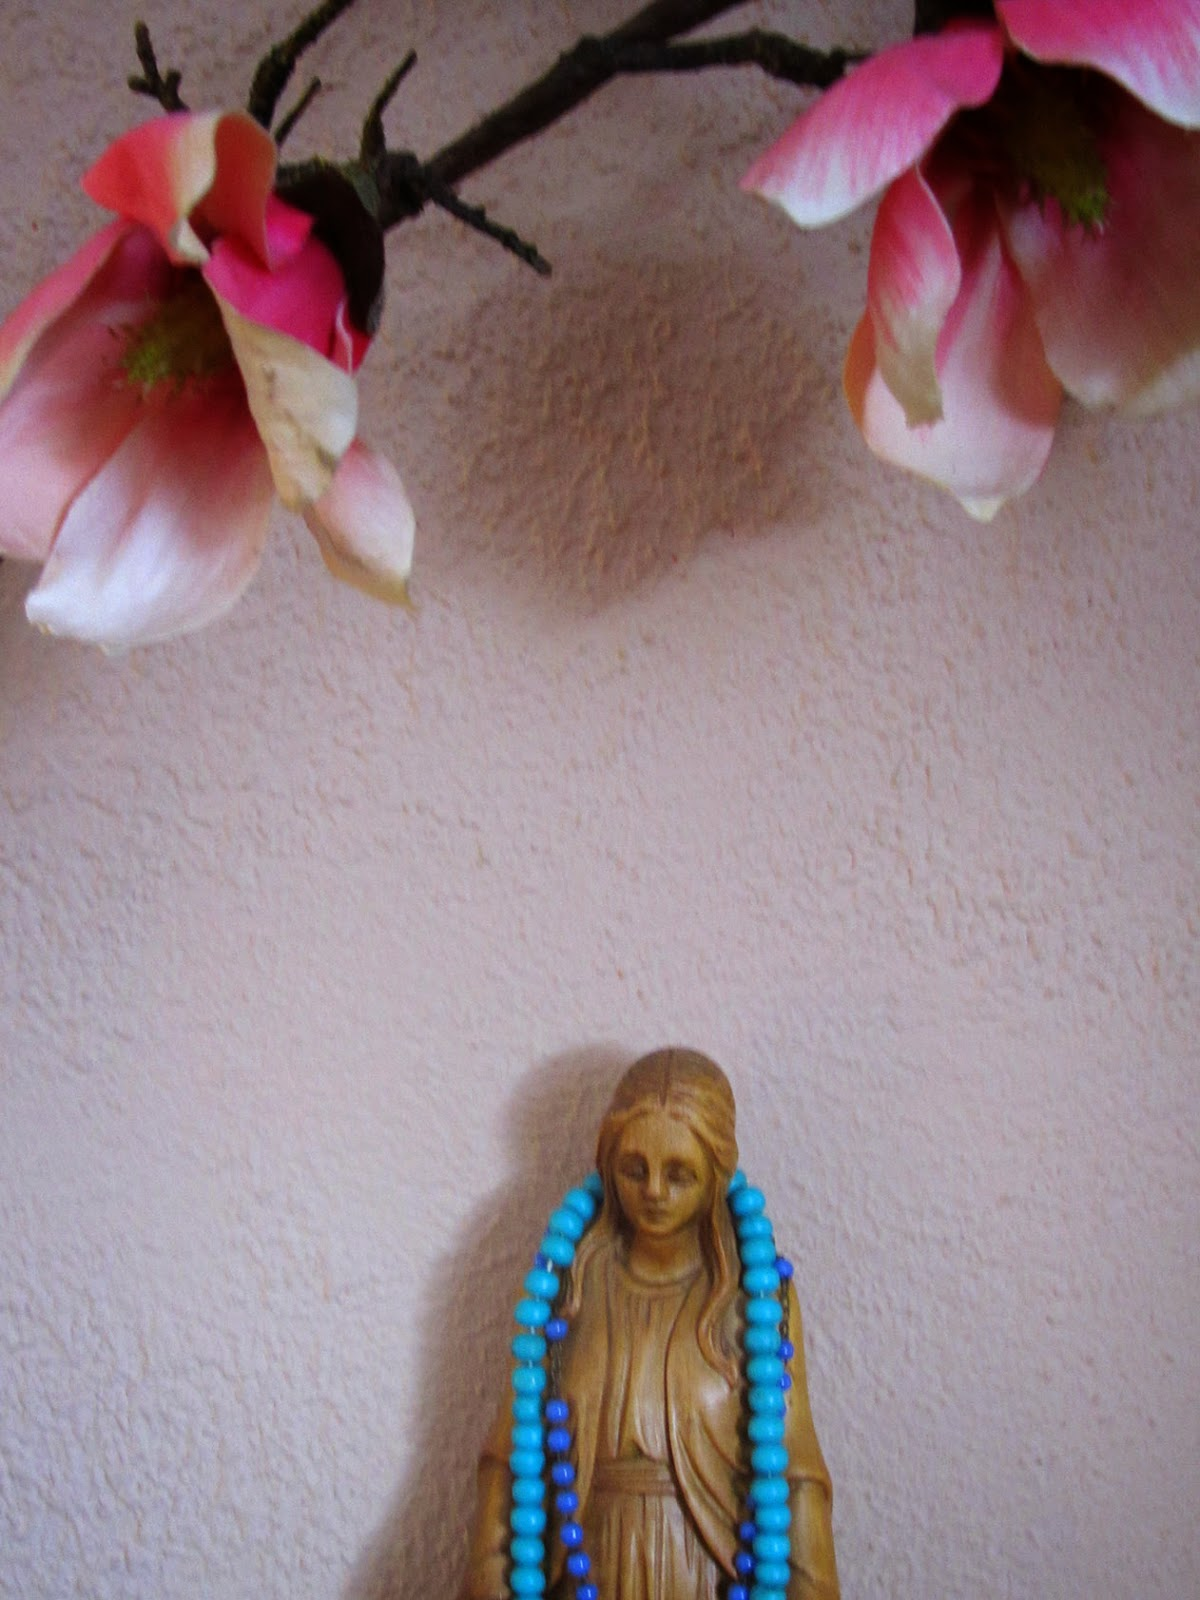 virgin Mary with flowers, rosary and mala